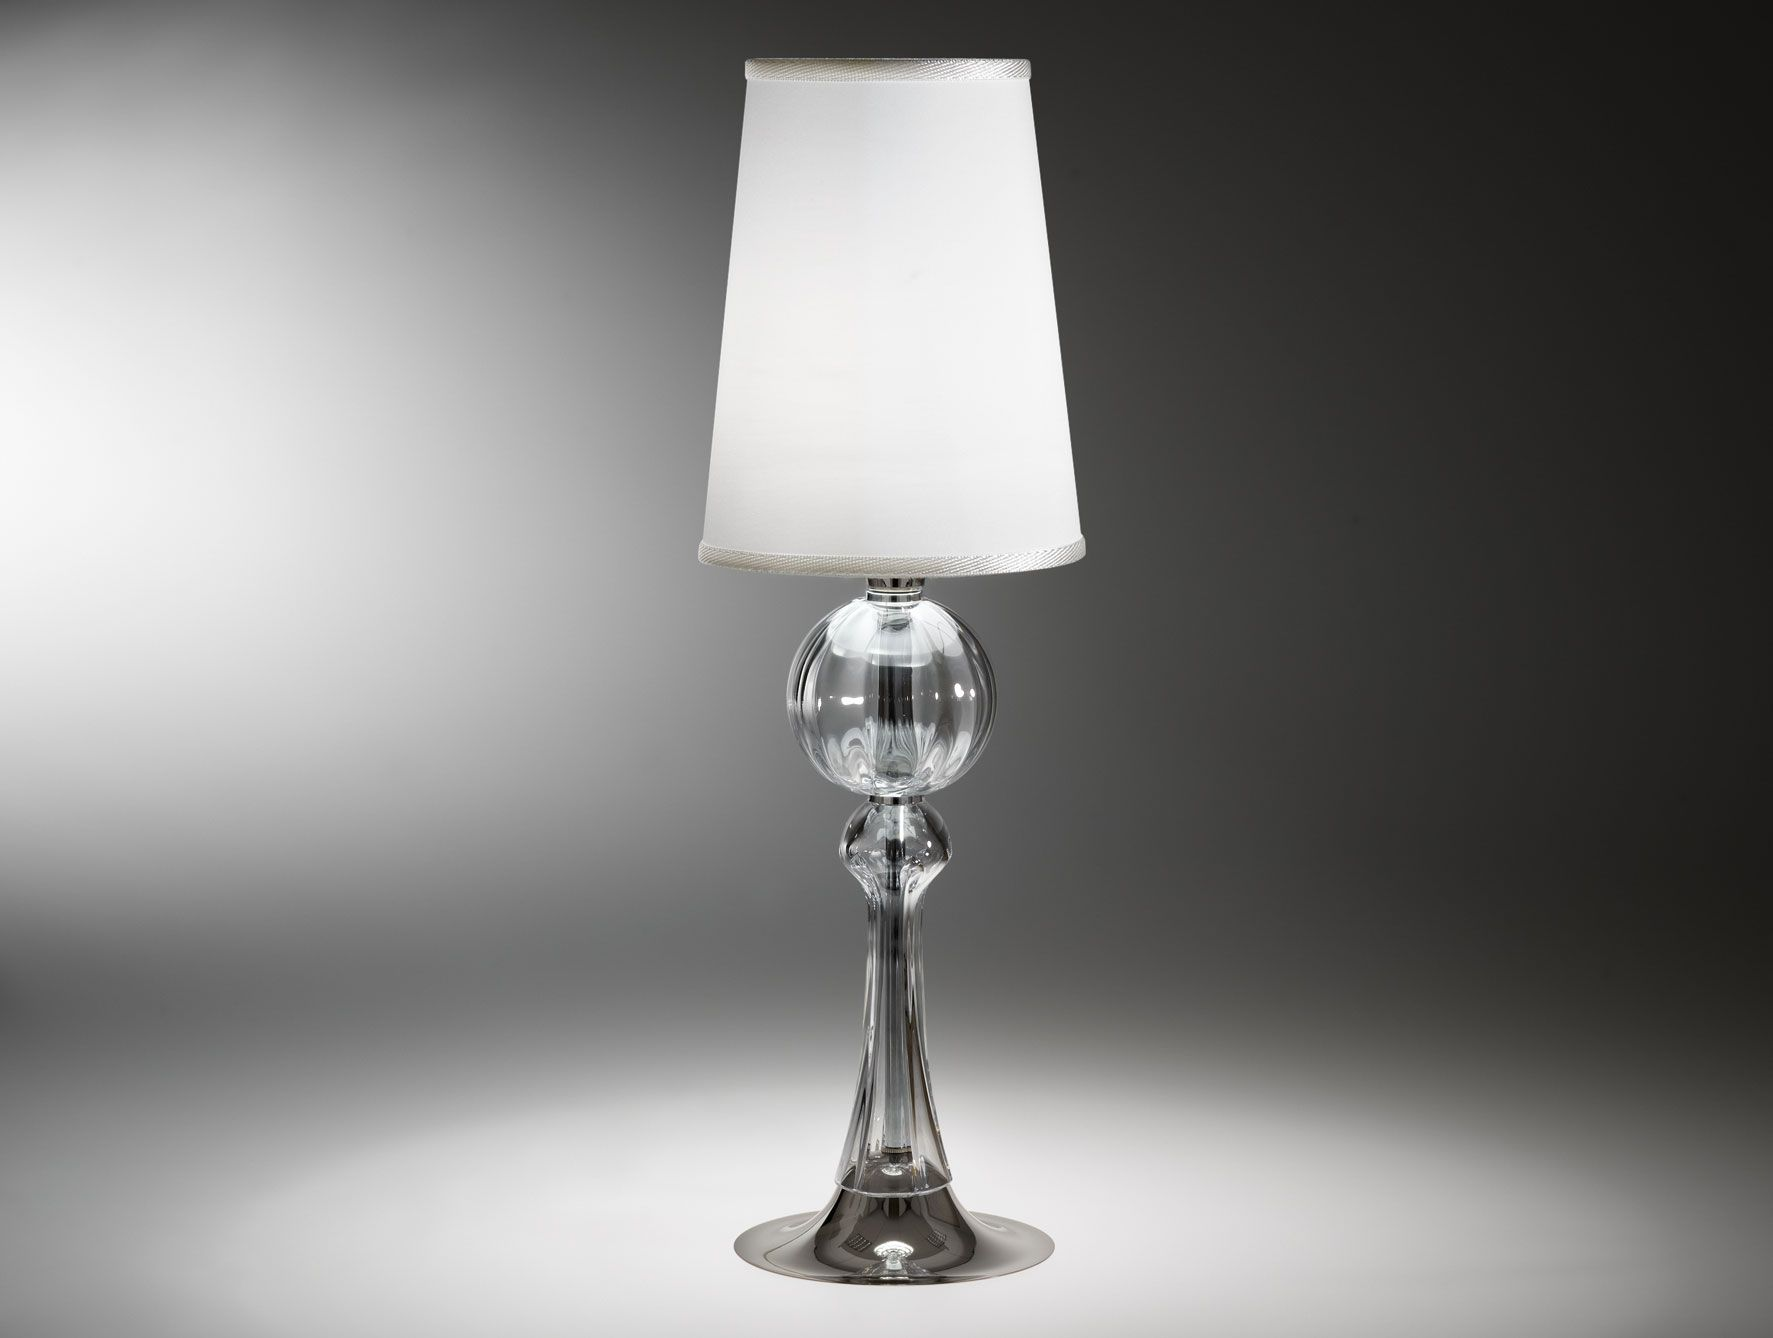 Italamp Table Lamp   Google Search